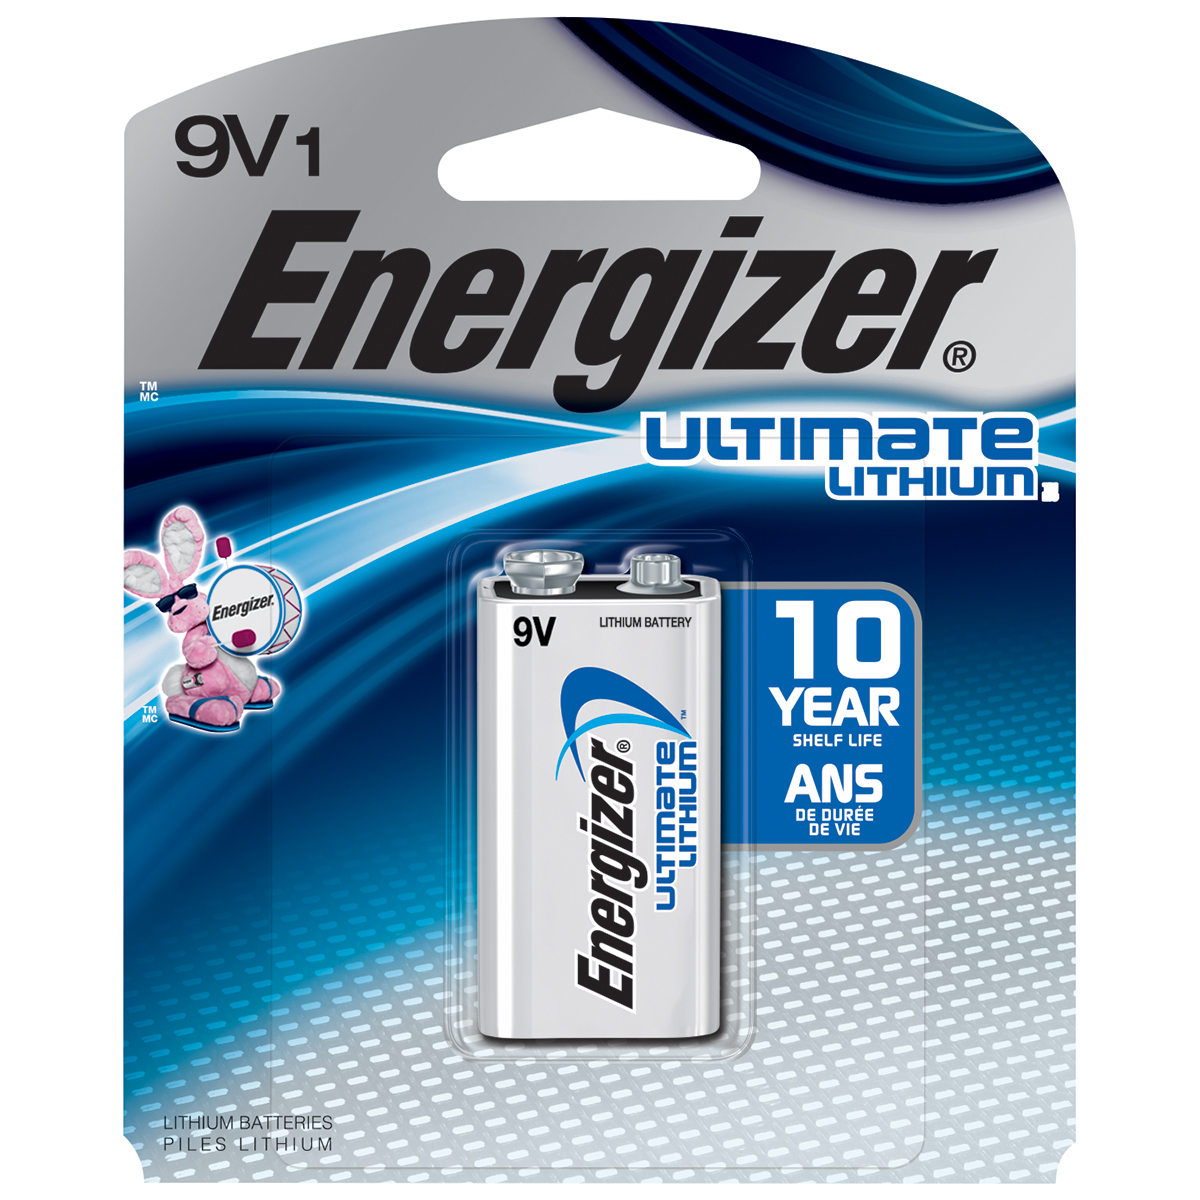 Energizer Ultimate Lithium 9V Batteries, 1- Pack